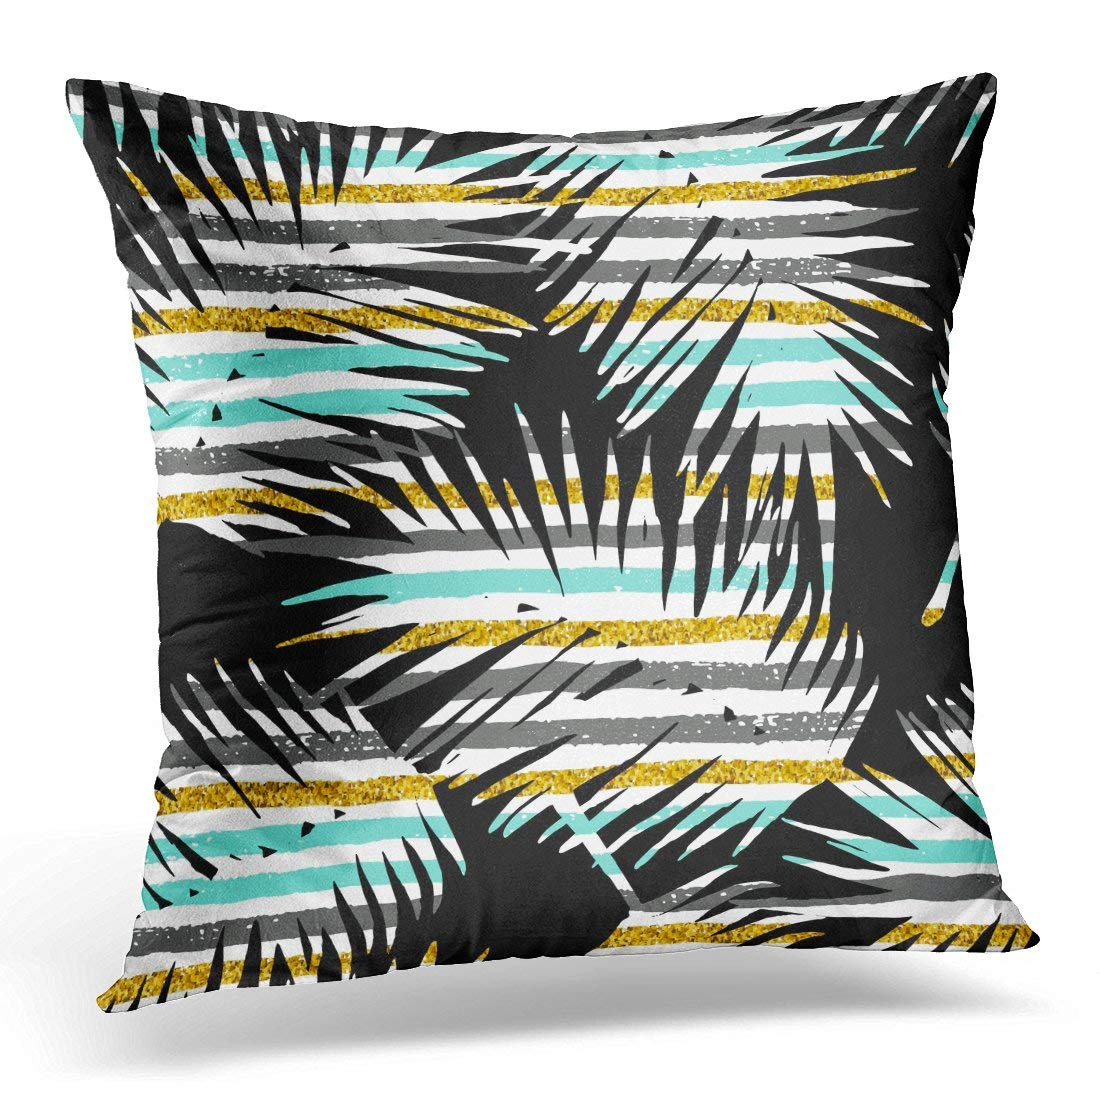 USART Beach Exotic Pattern with Palm Leaf Silhouettes Gold Glitter and Geometric Design Liana Pillow Case Pillow Cover 20x20 inch